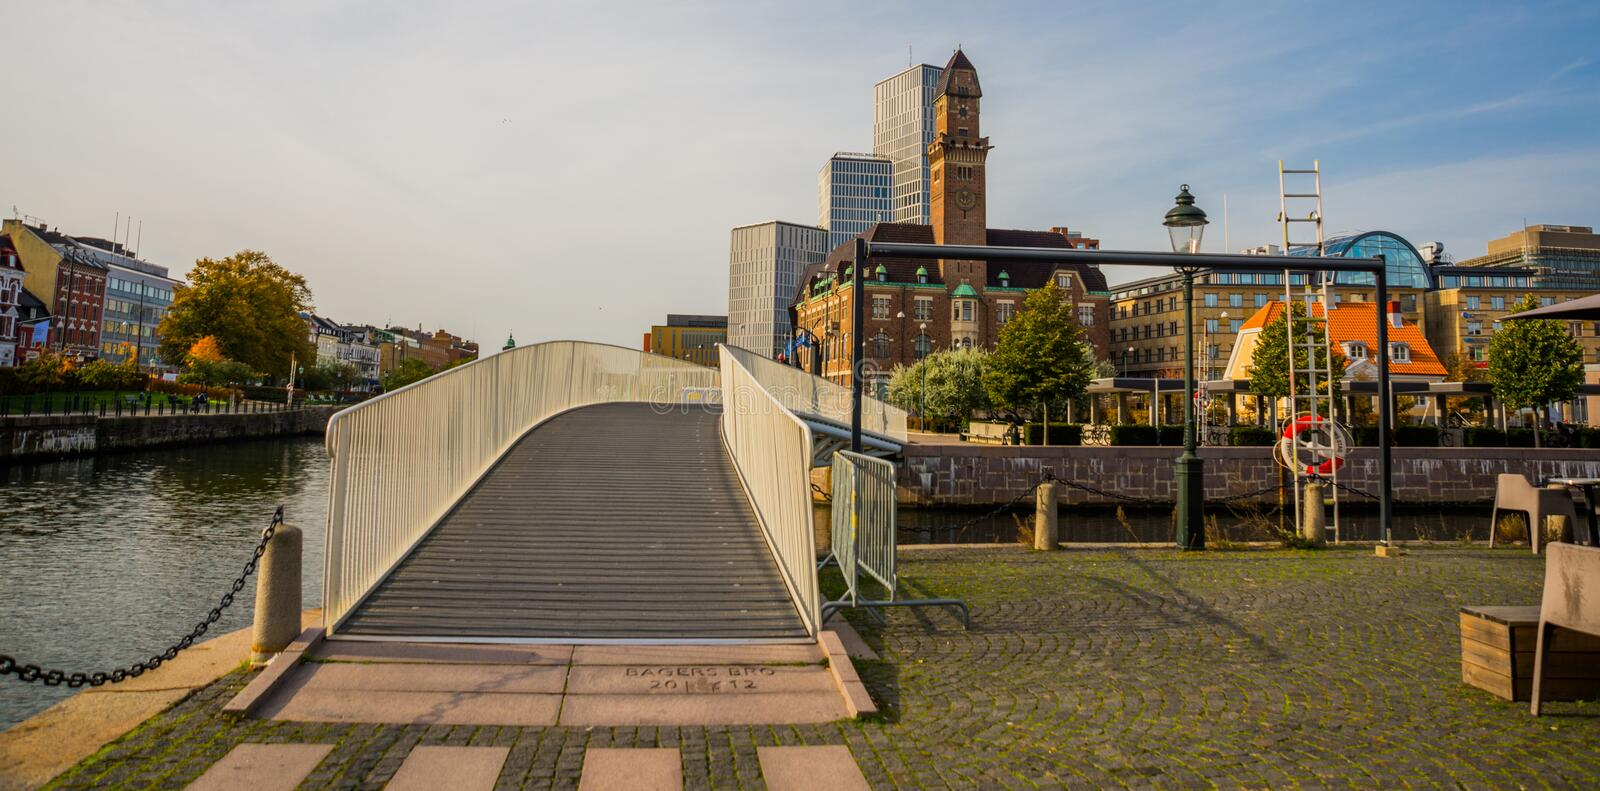 MALMO, SWEDEN: Beautiful scenery on the promenade of the bridge and buildings in city of Malmo stock photos